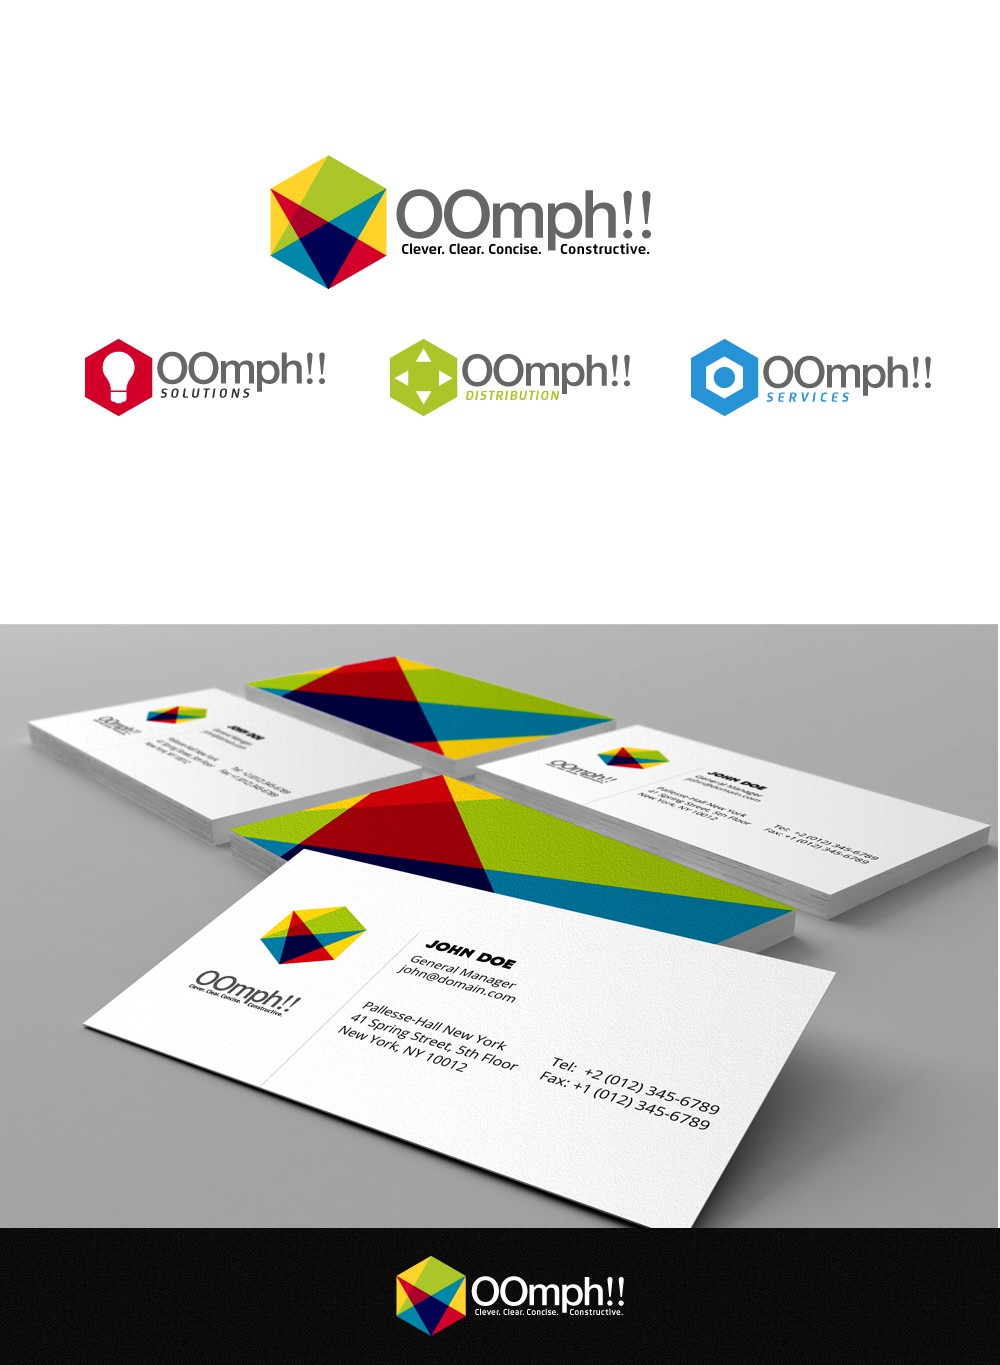 Help The OOmph!! Group   or just OOmph!! Group ... or just  OOmph!! with a new logo